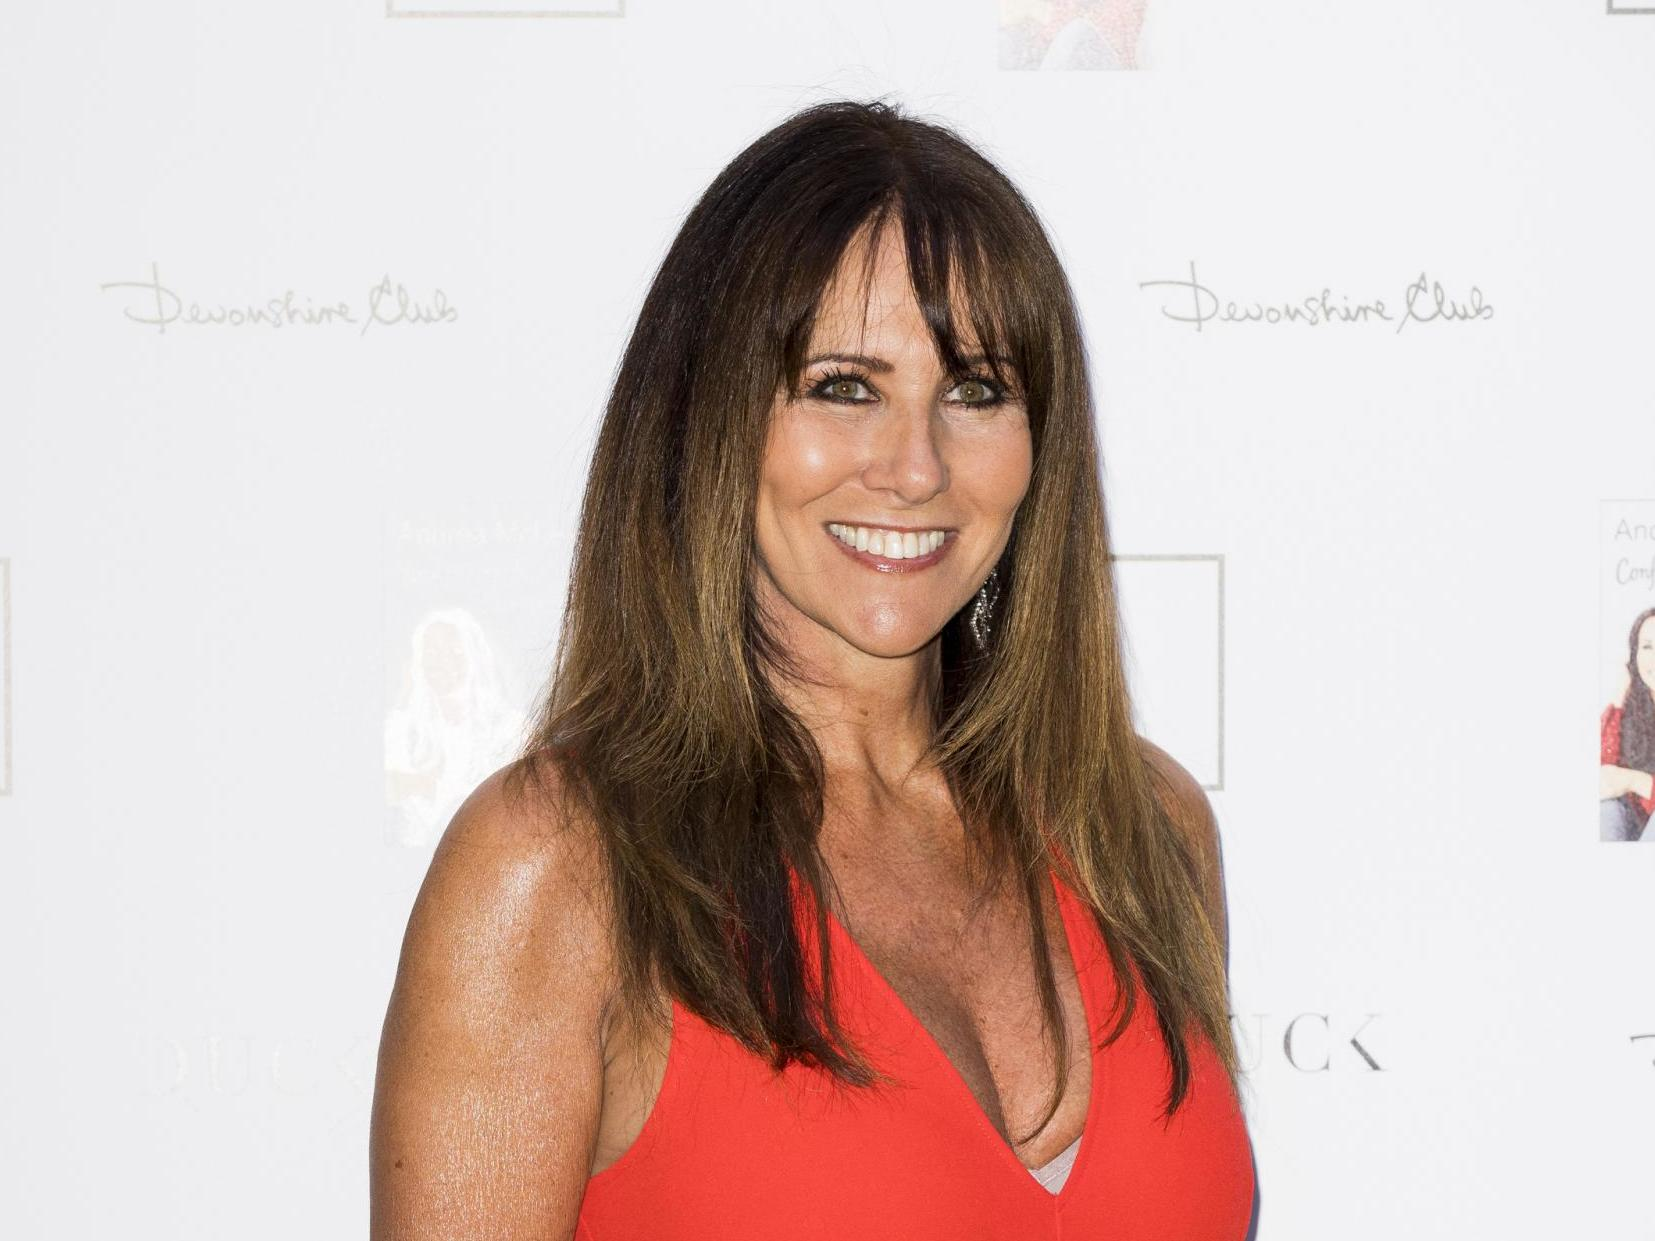 Coronavirus: Dancing On Ice star Linda Lusardi says she is 'extremely ill' with Covid-19